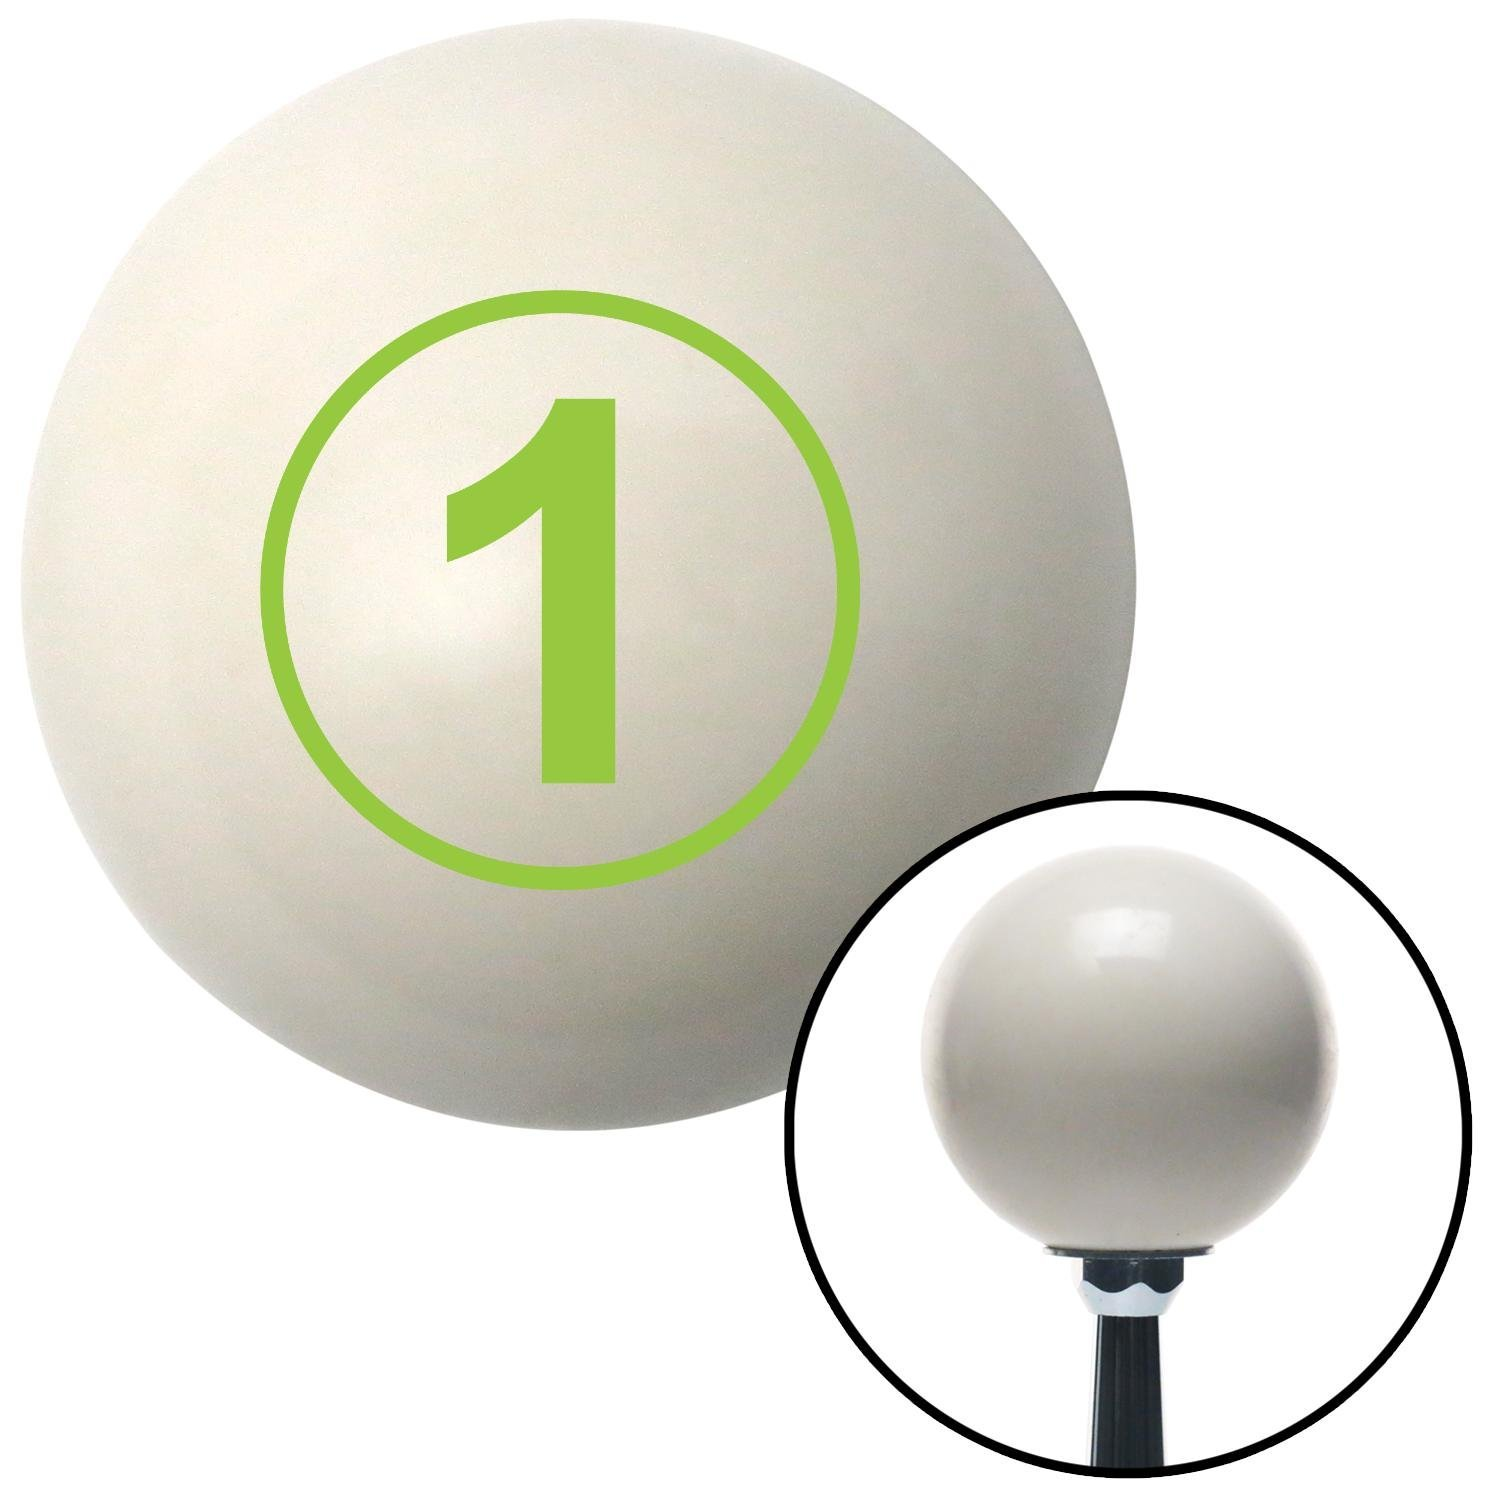 American Shifter 30277 Ivory Shift Knob with 16mm x 1.5 Insert Green Ball 1